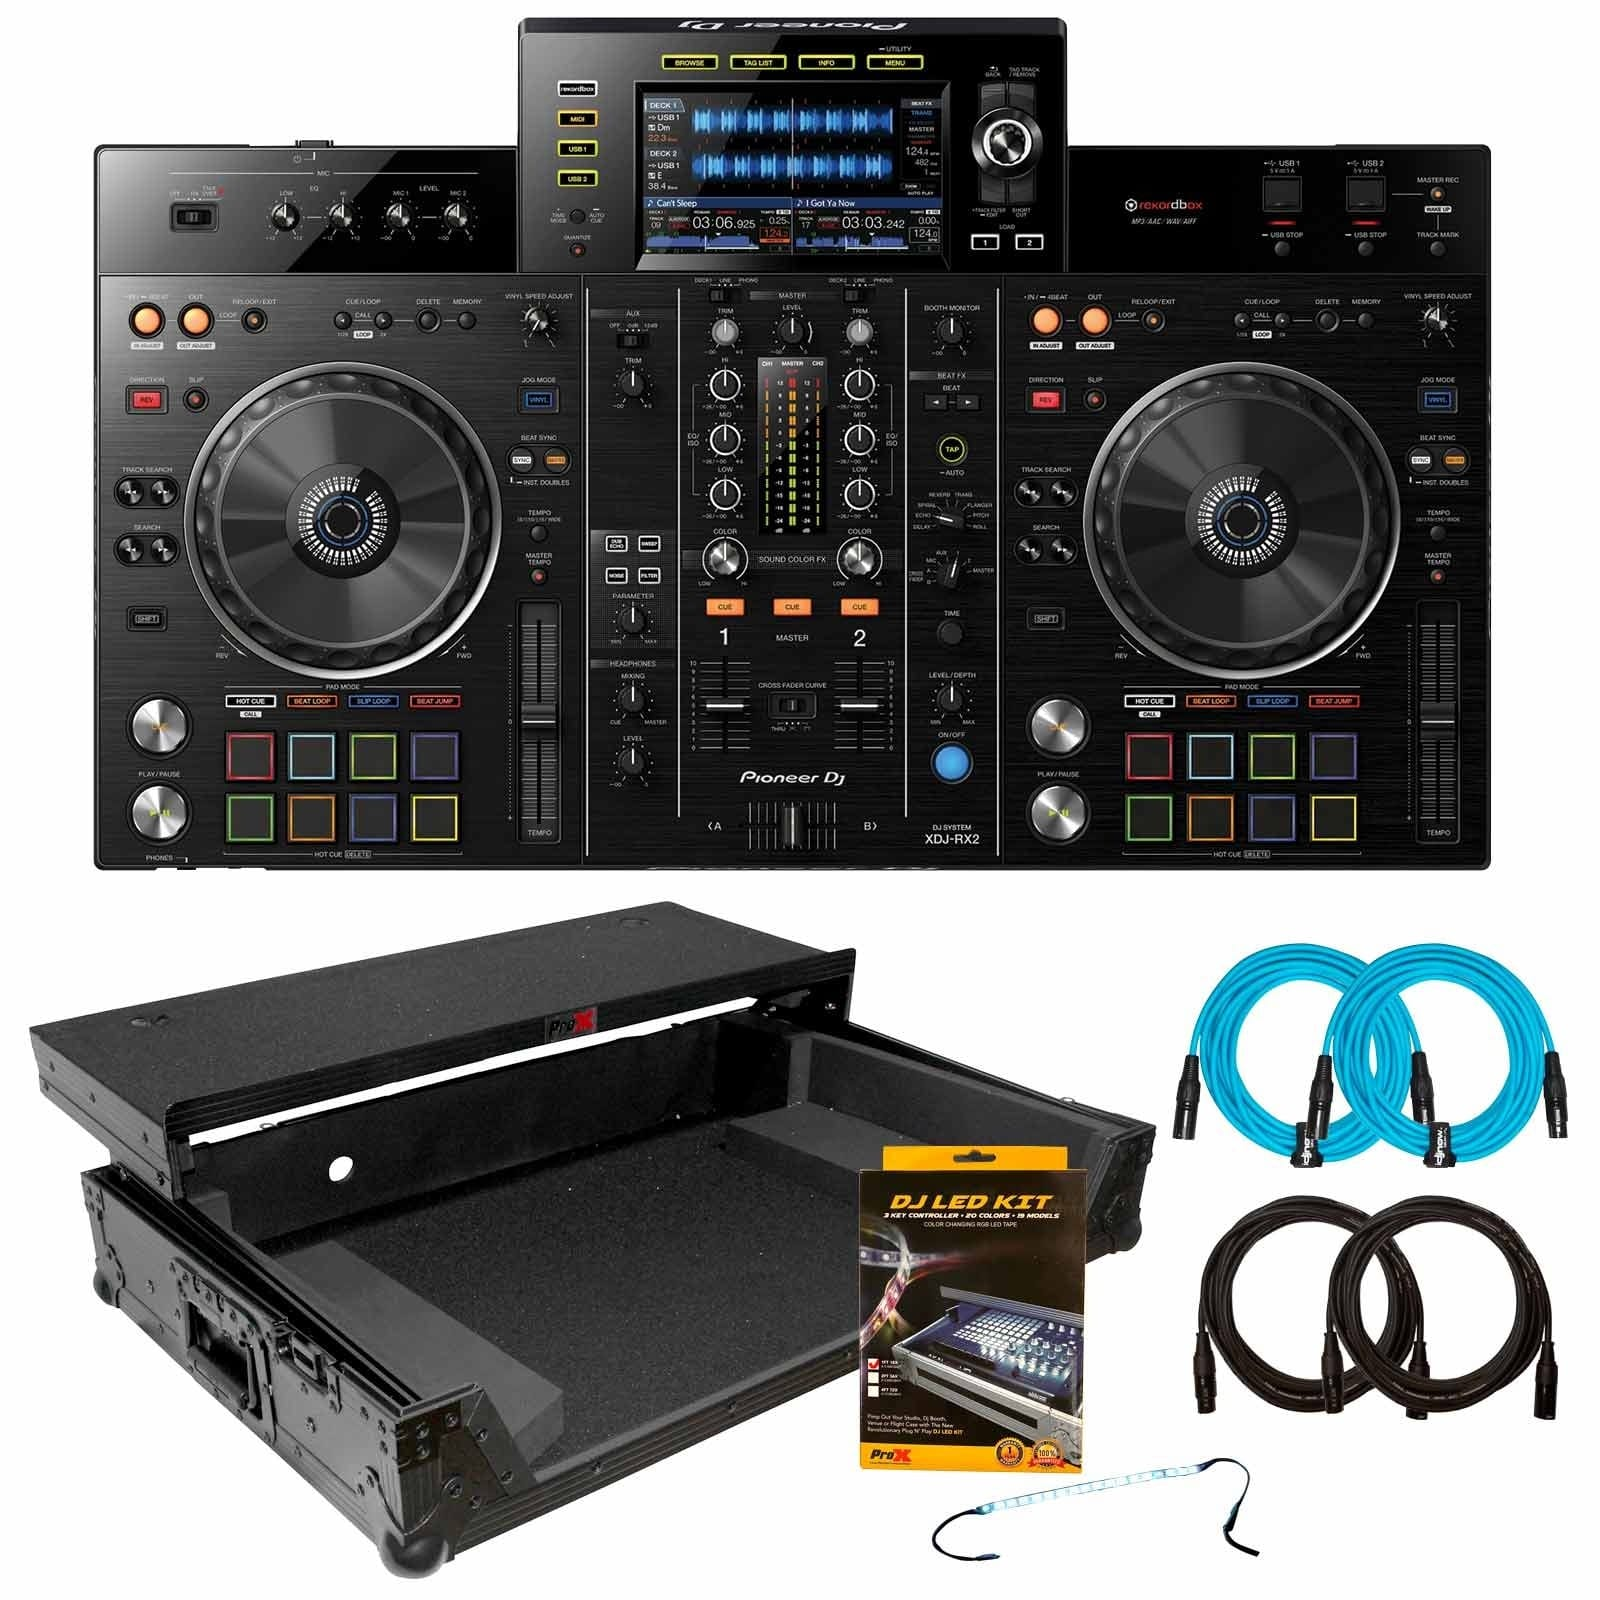 pioneer-dj-xdj-rx2-2-channel-professional-rekordbox-dj-system-with-black-on-black-flight-case-package-b99.jpg